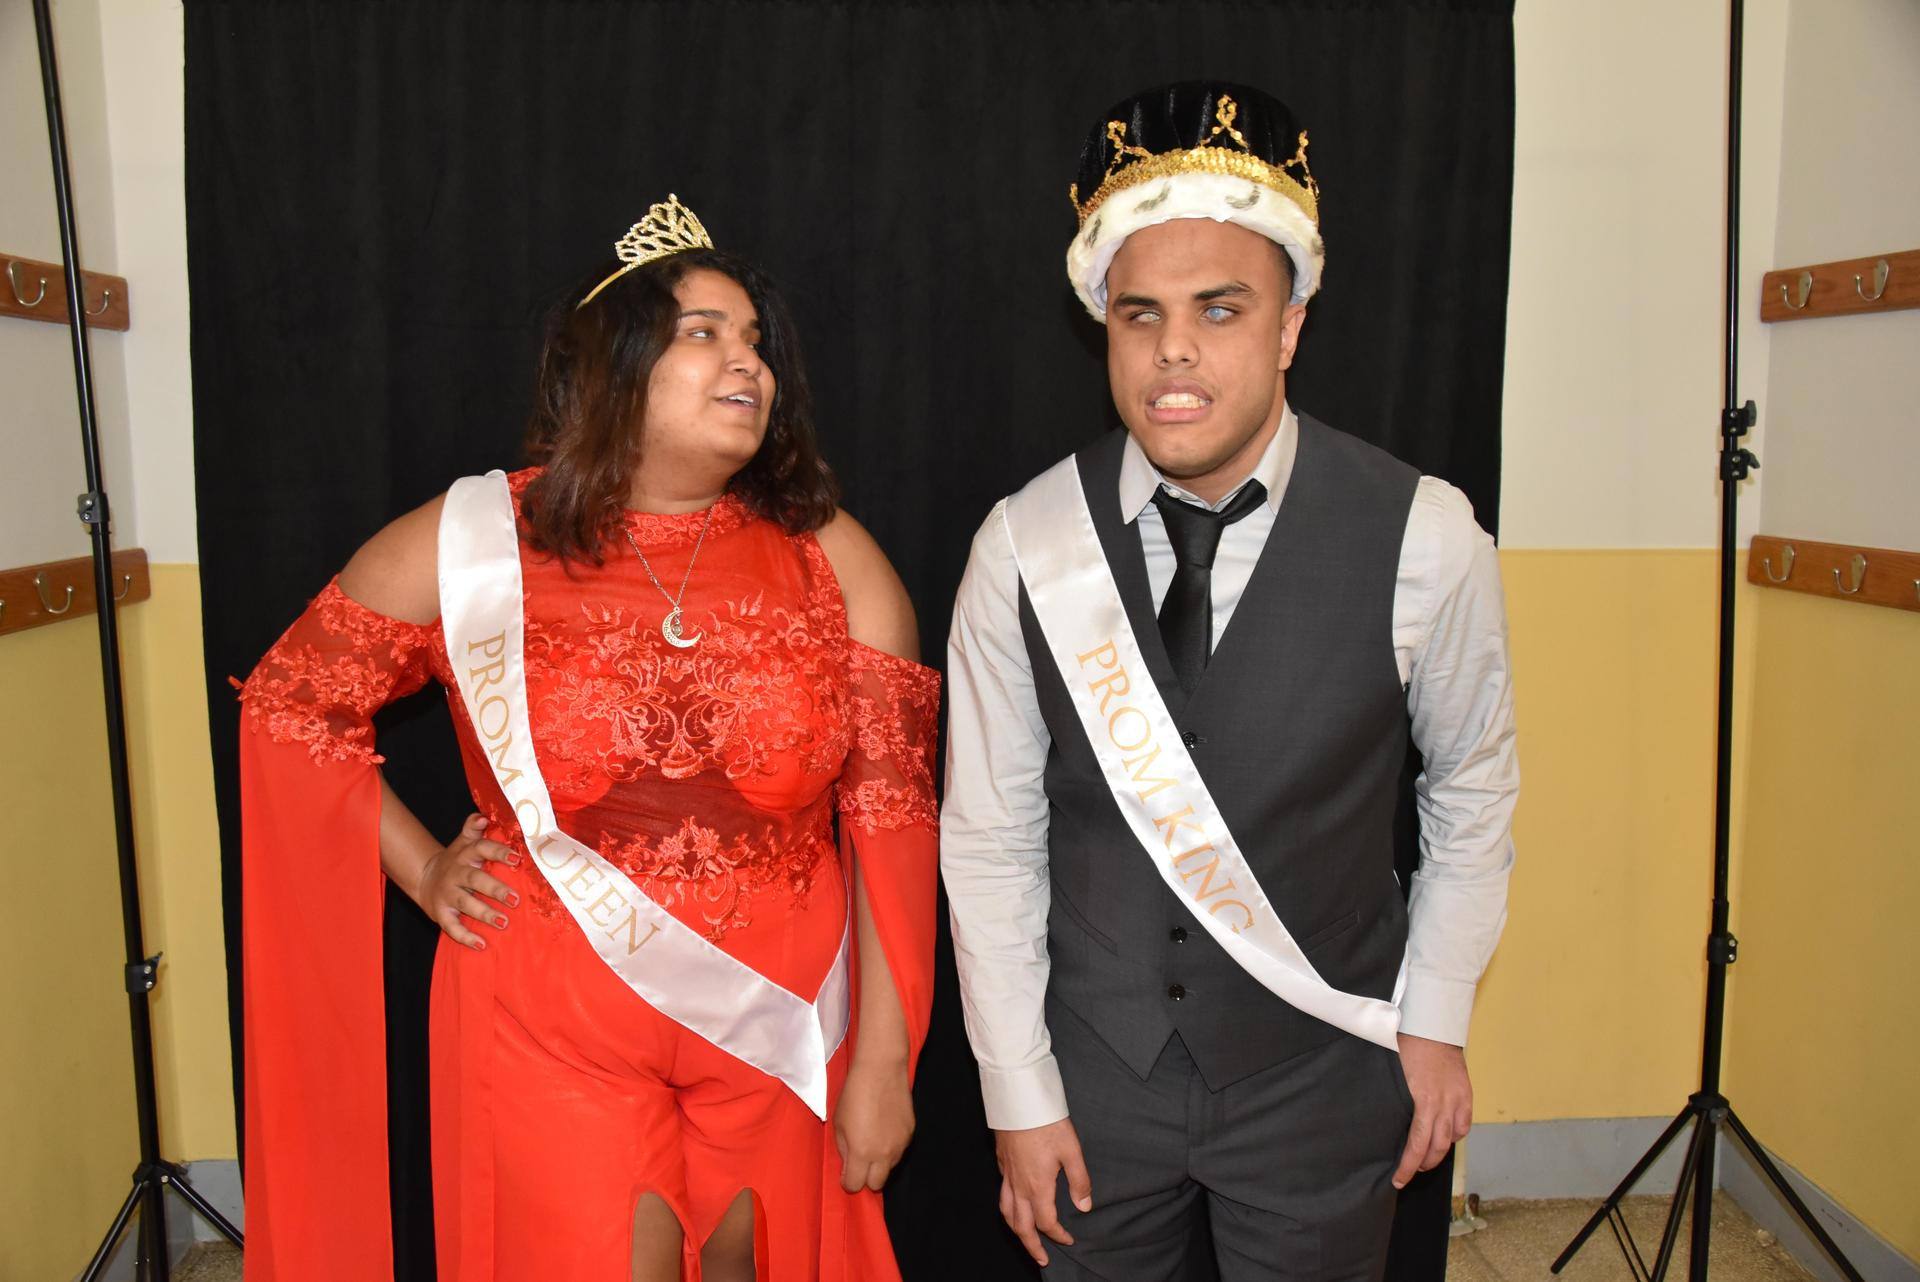 The prom queen and king pose for a photo, wearing crowns and sashes